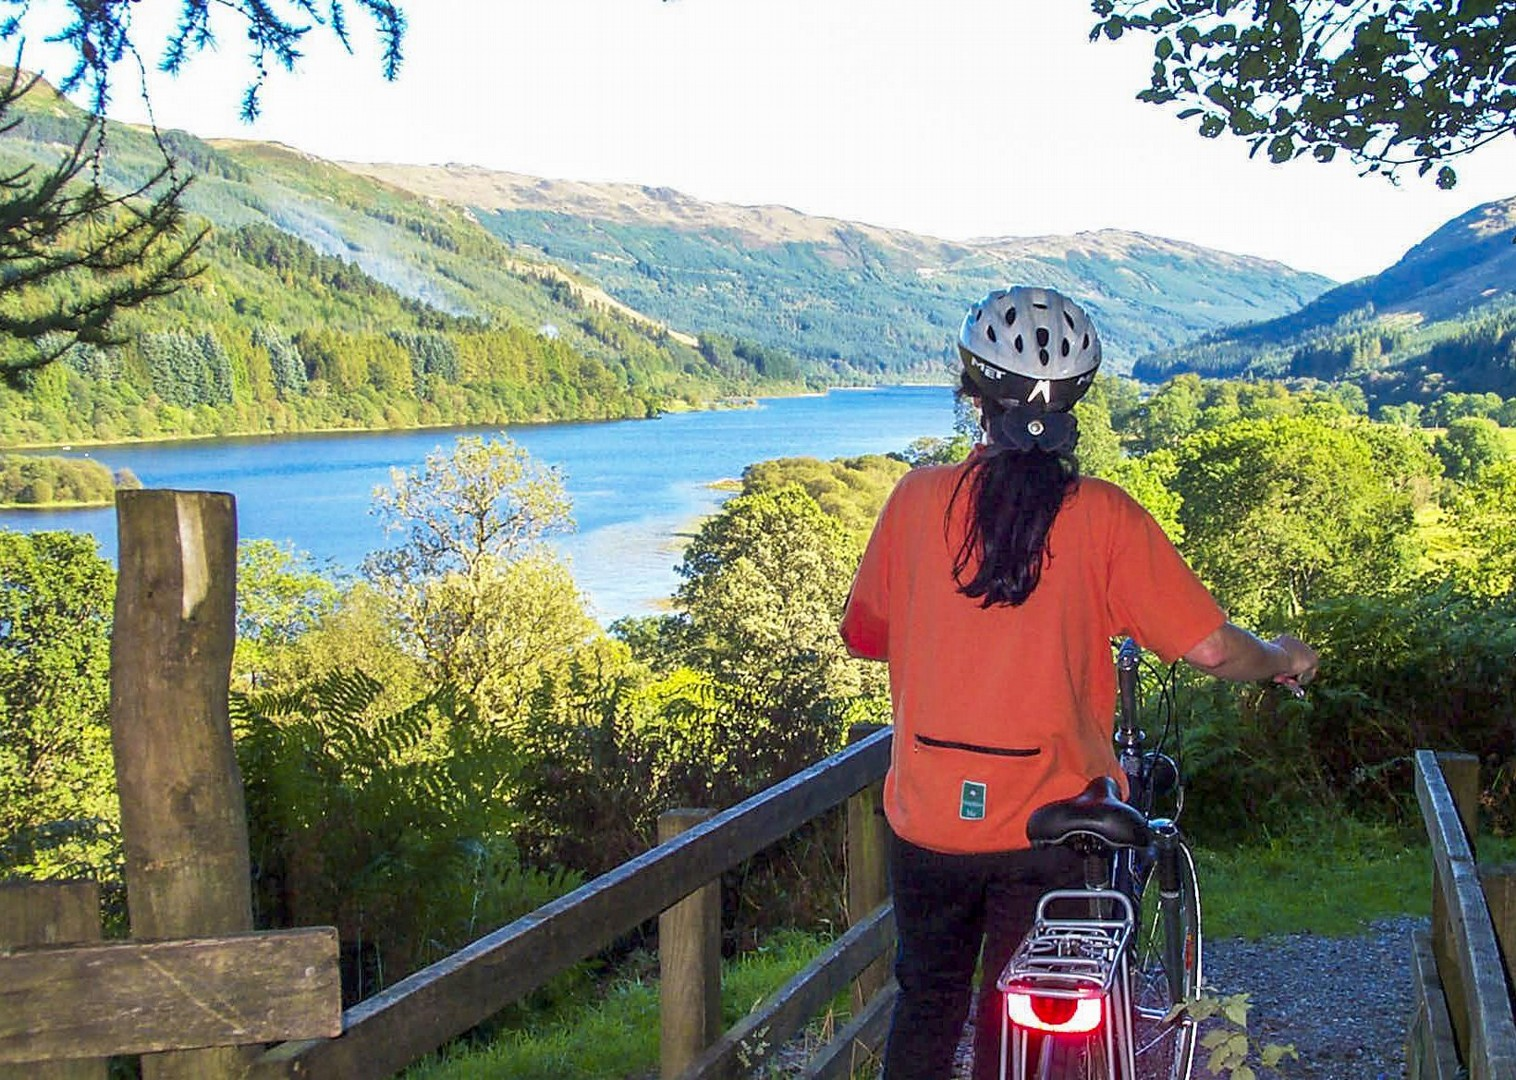 female-cycling-scotland-uk-tour-saddle-skedaddle-self-guided-river-clyde.jpg - UK - Scotland - Lochs and Glens - Self-Guided Leisure Cycling Holiday - Leisure Cycling